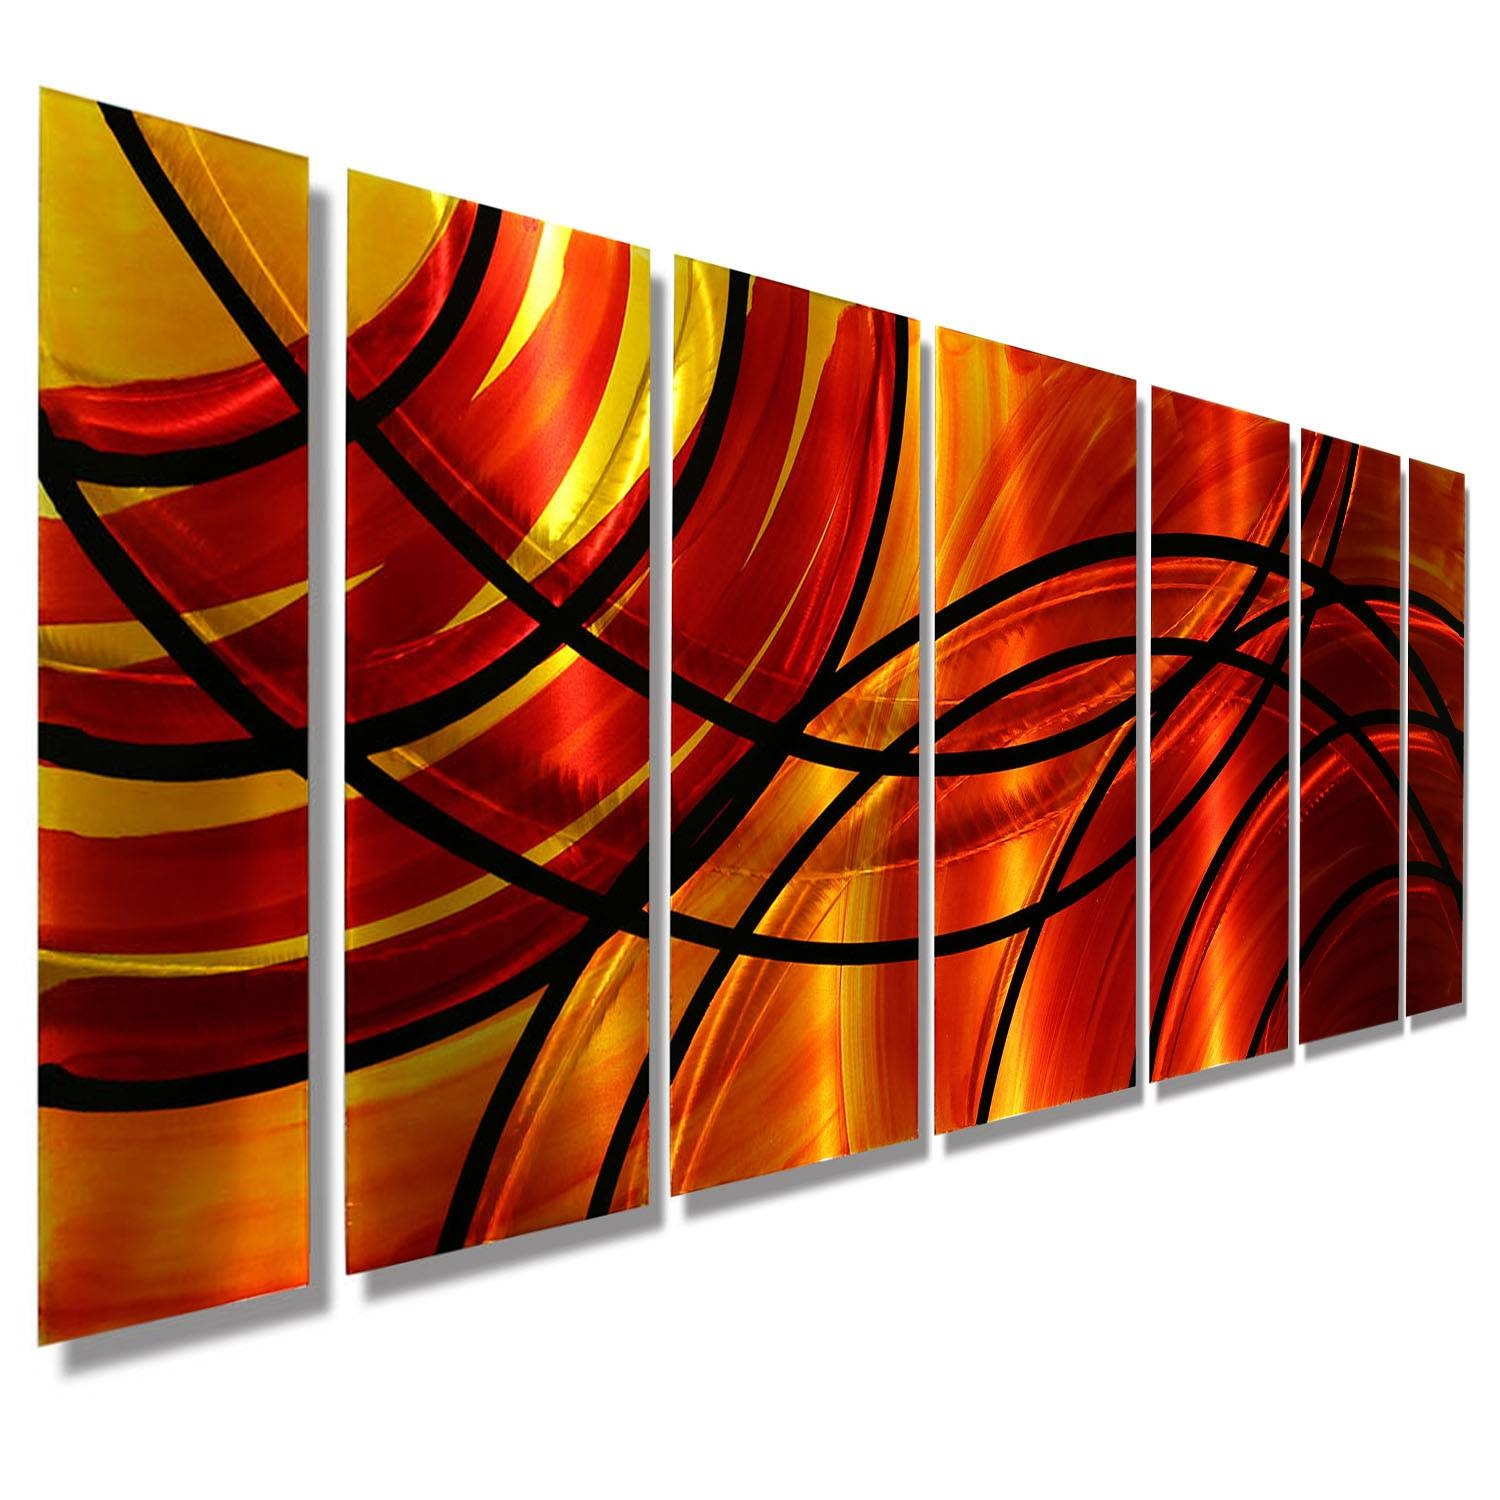 Boundfire – Red & Orange Modern Metal Wall Artjon Allen For Best And Newest Red Metal Wall Art (View 3 of 20)